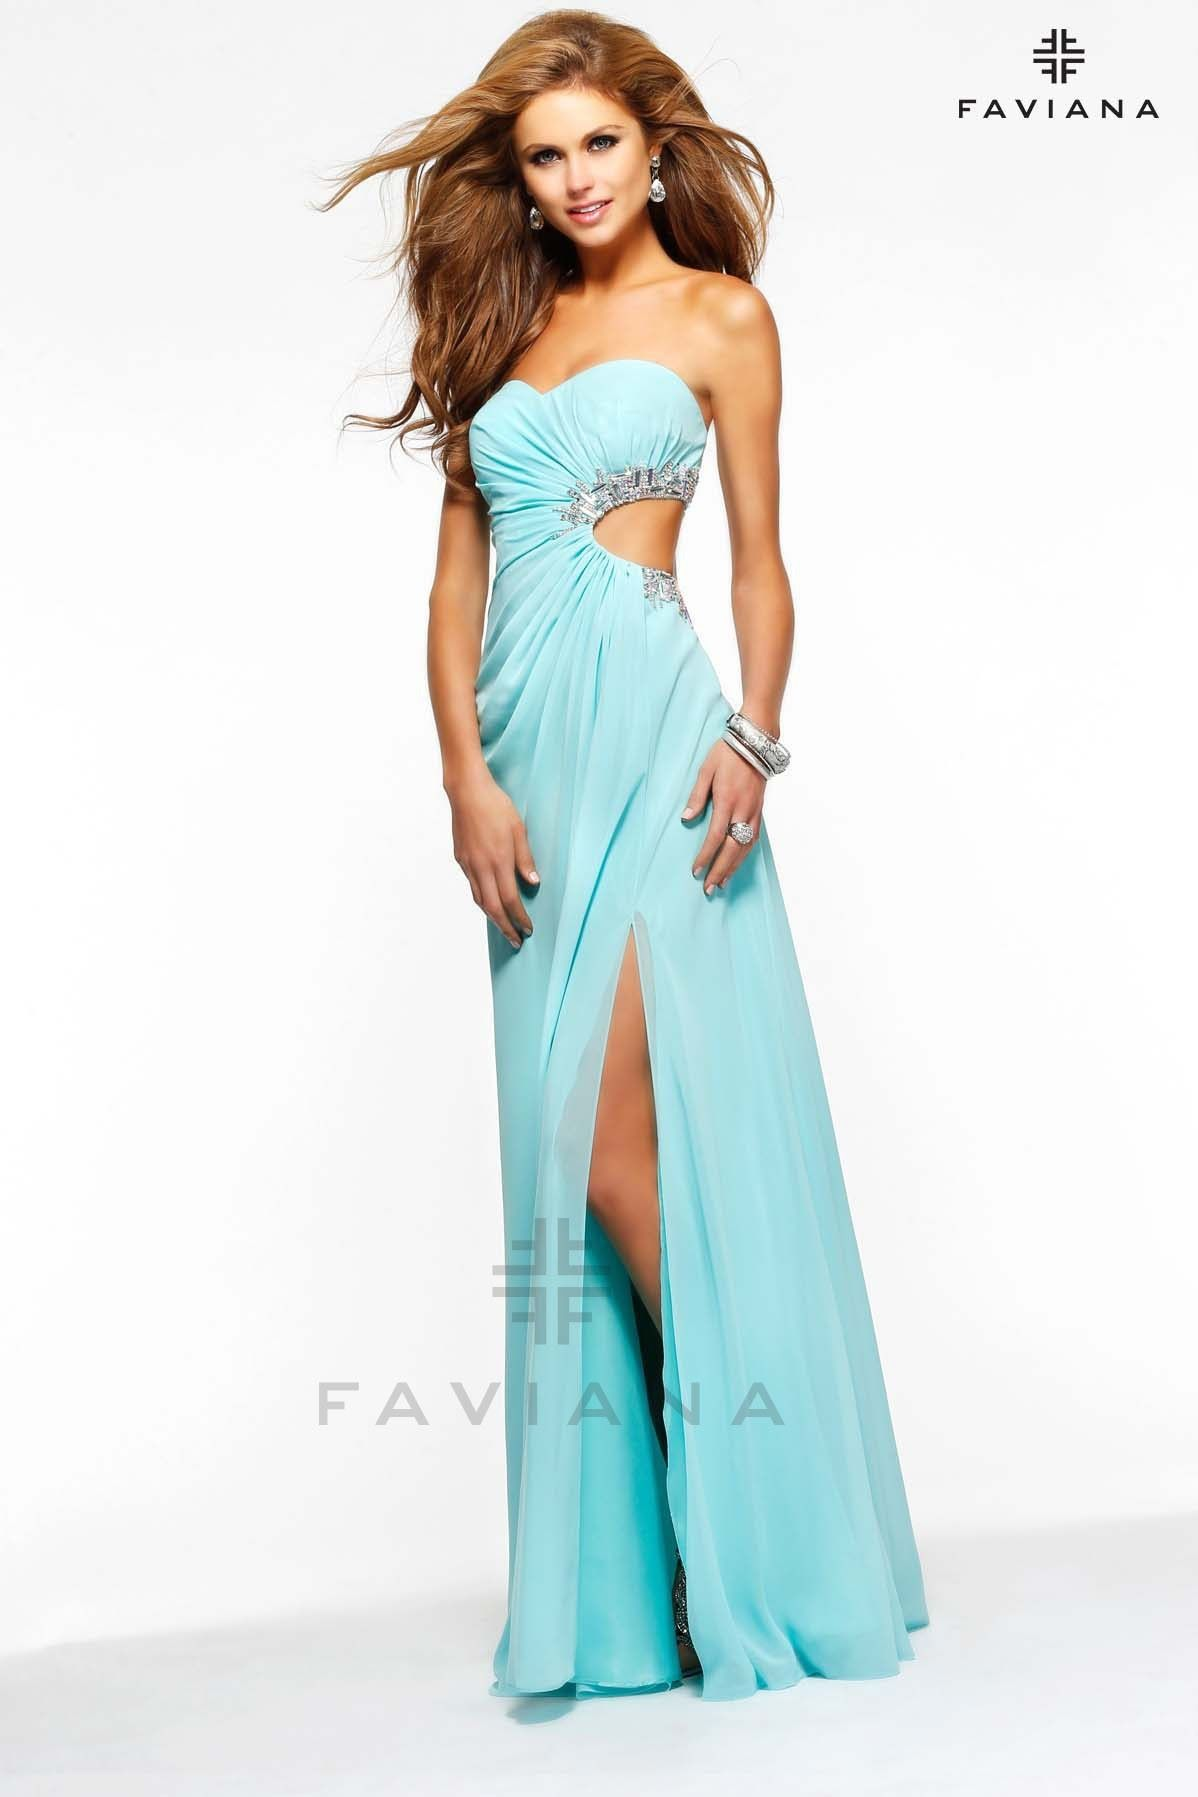 Featuring a stunning strapless neckline, Faviana 7122 is a rare ...